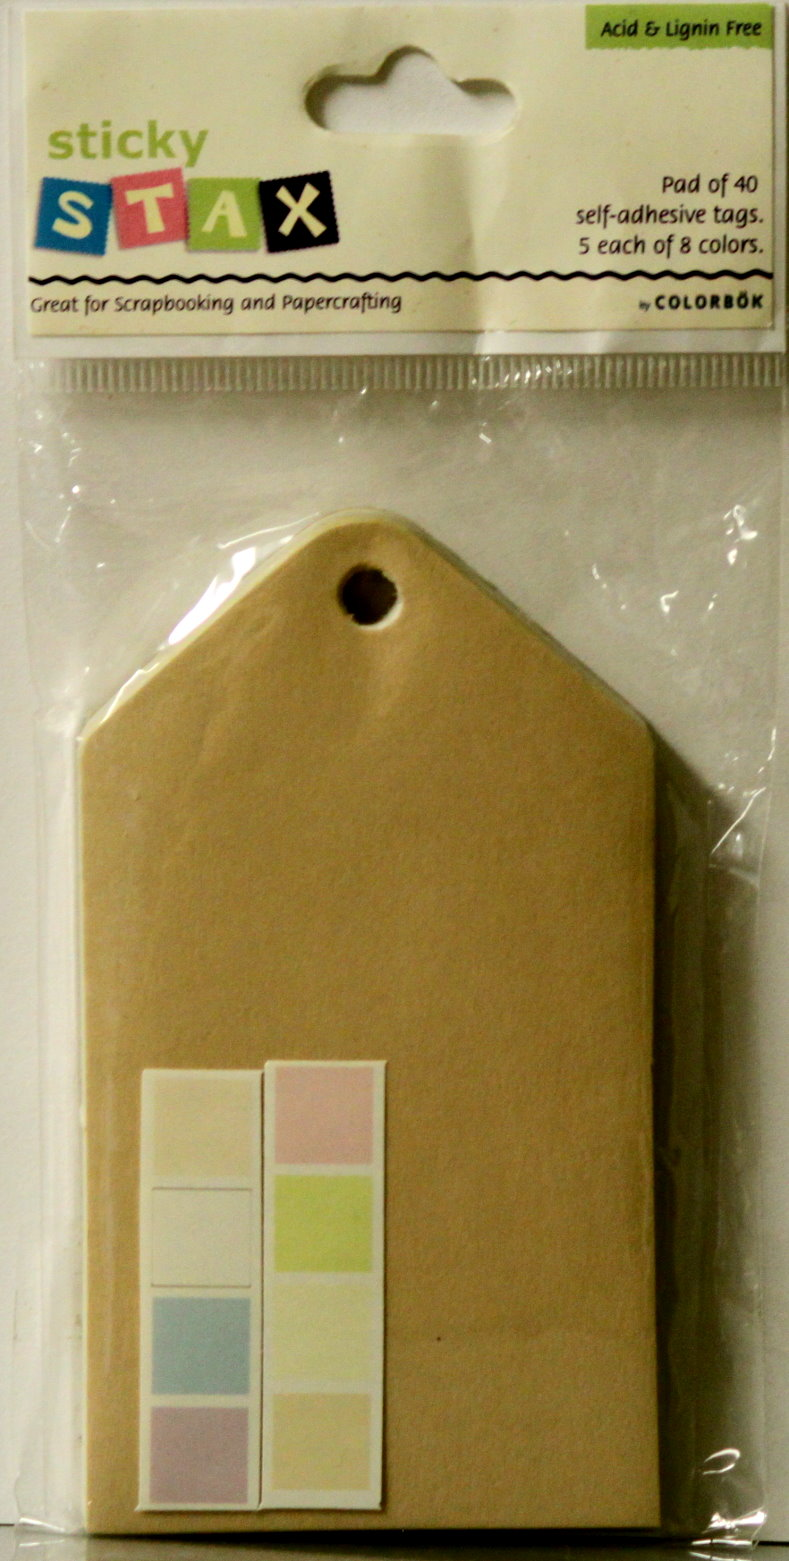 Colorbok Sticky Stax Pastel Self-Adhesive Tags Embellishments